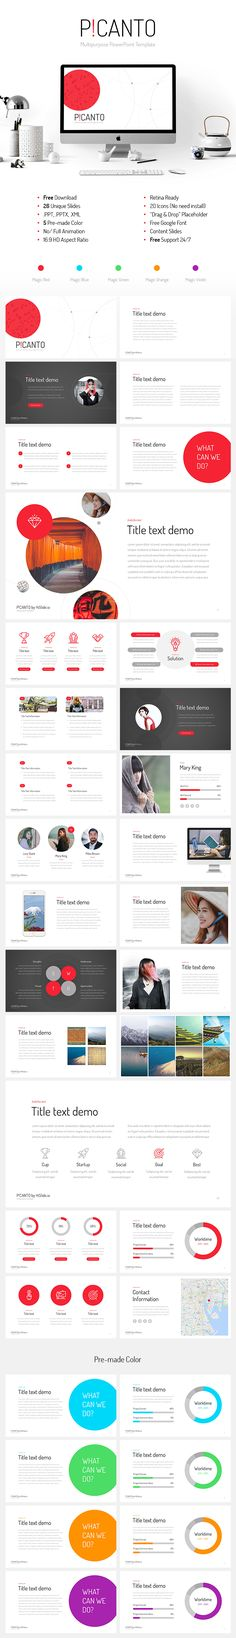 41 best free powerpoint template images on pinterest free keynote picanto ppt template free download toneelgroepblik Choice Image